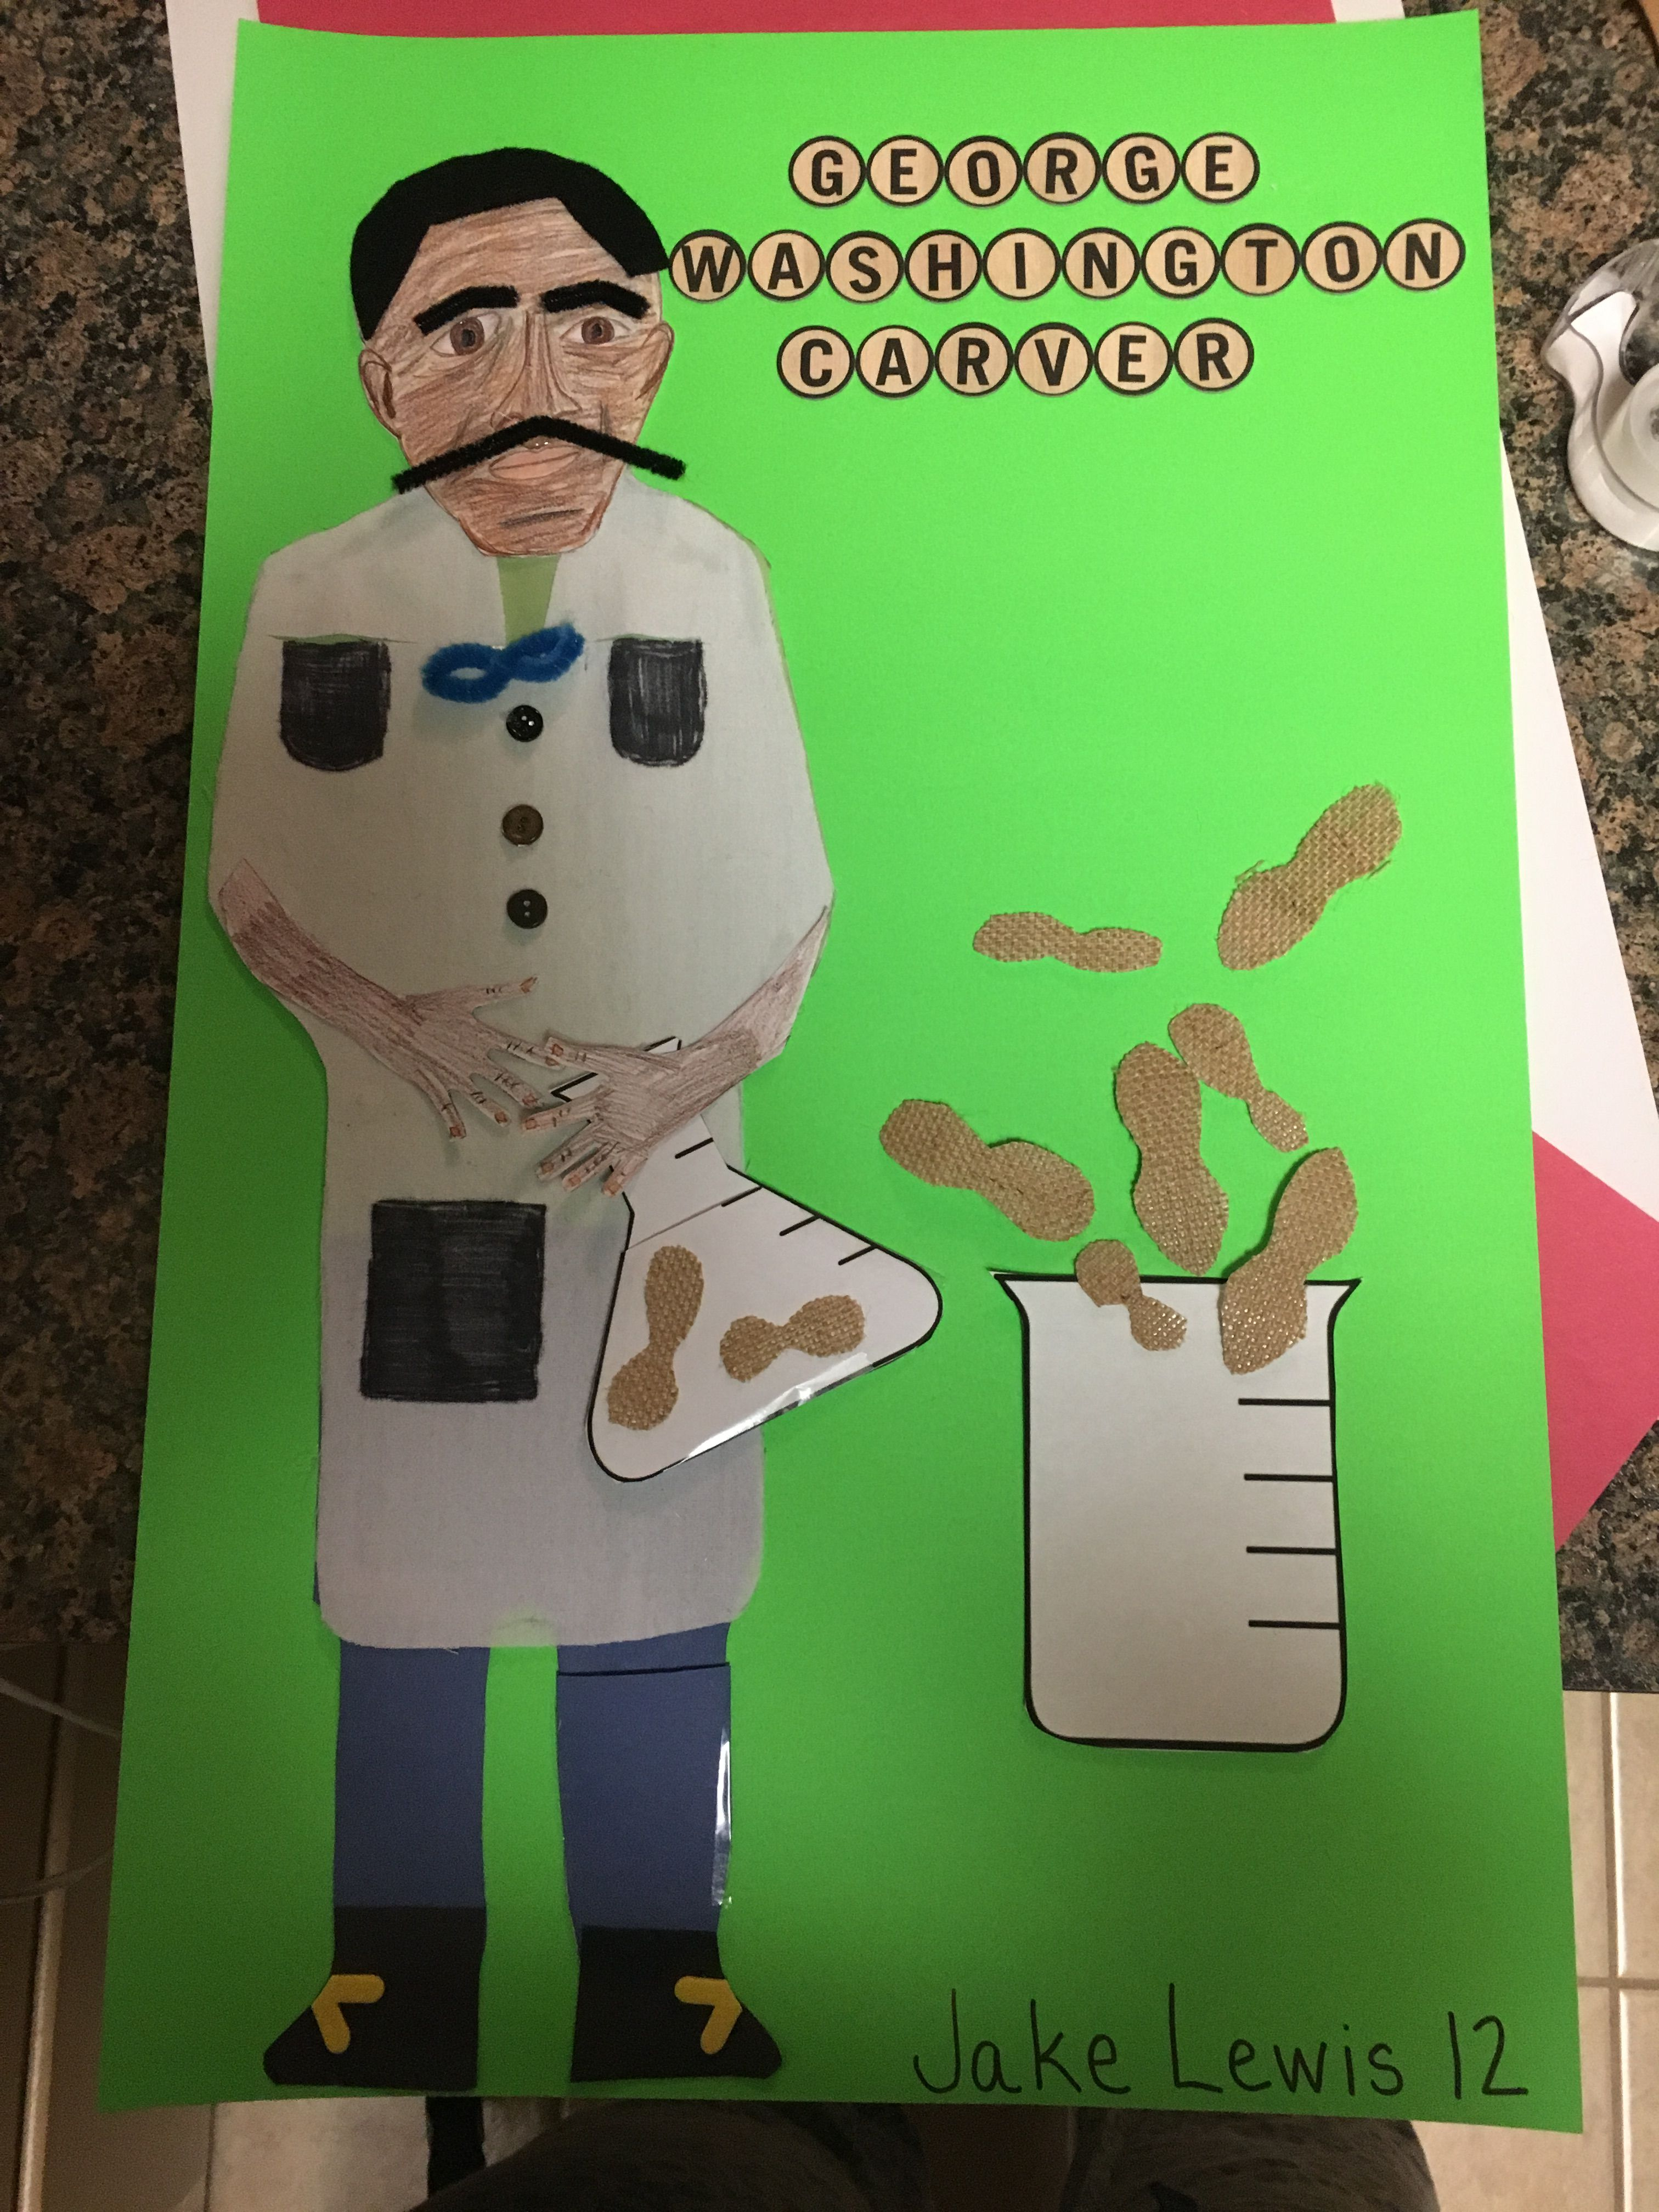 George Washington Carver Biography Project